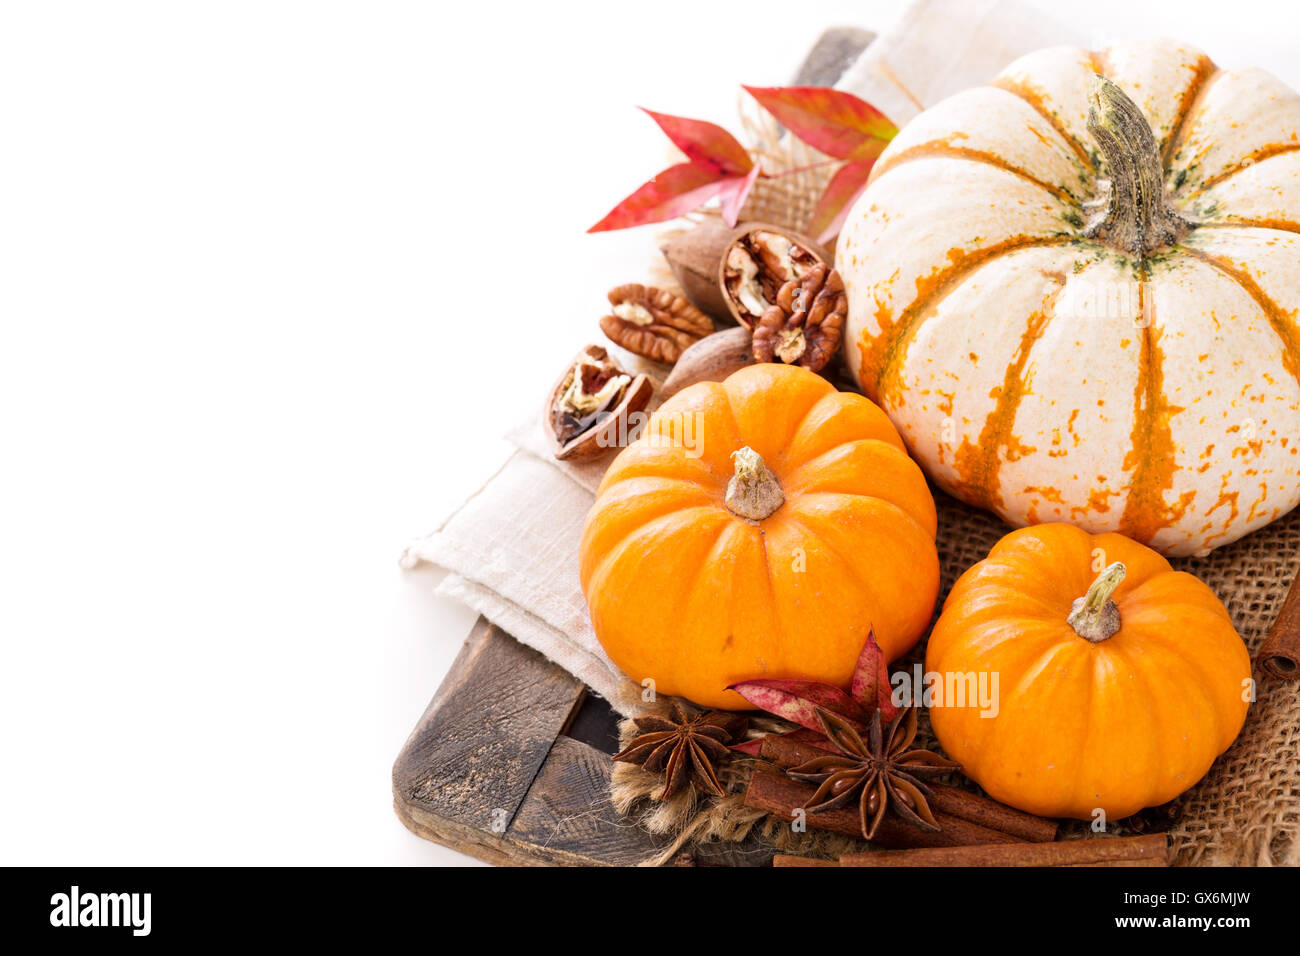 Variety of decorative pumpkins on white background - Stock Image